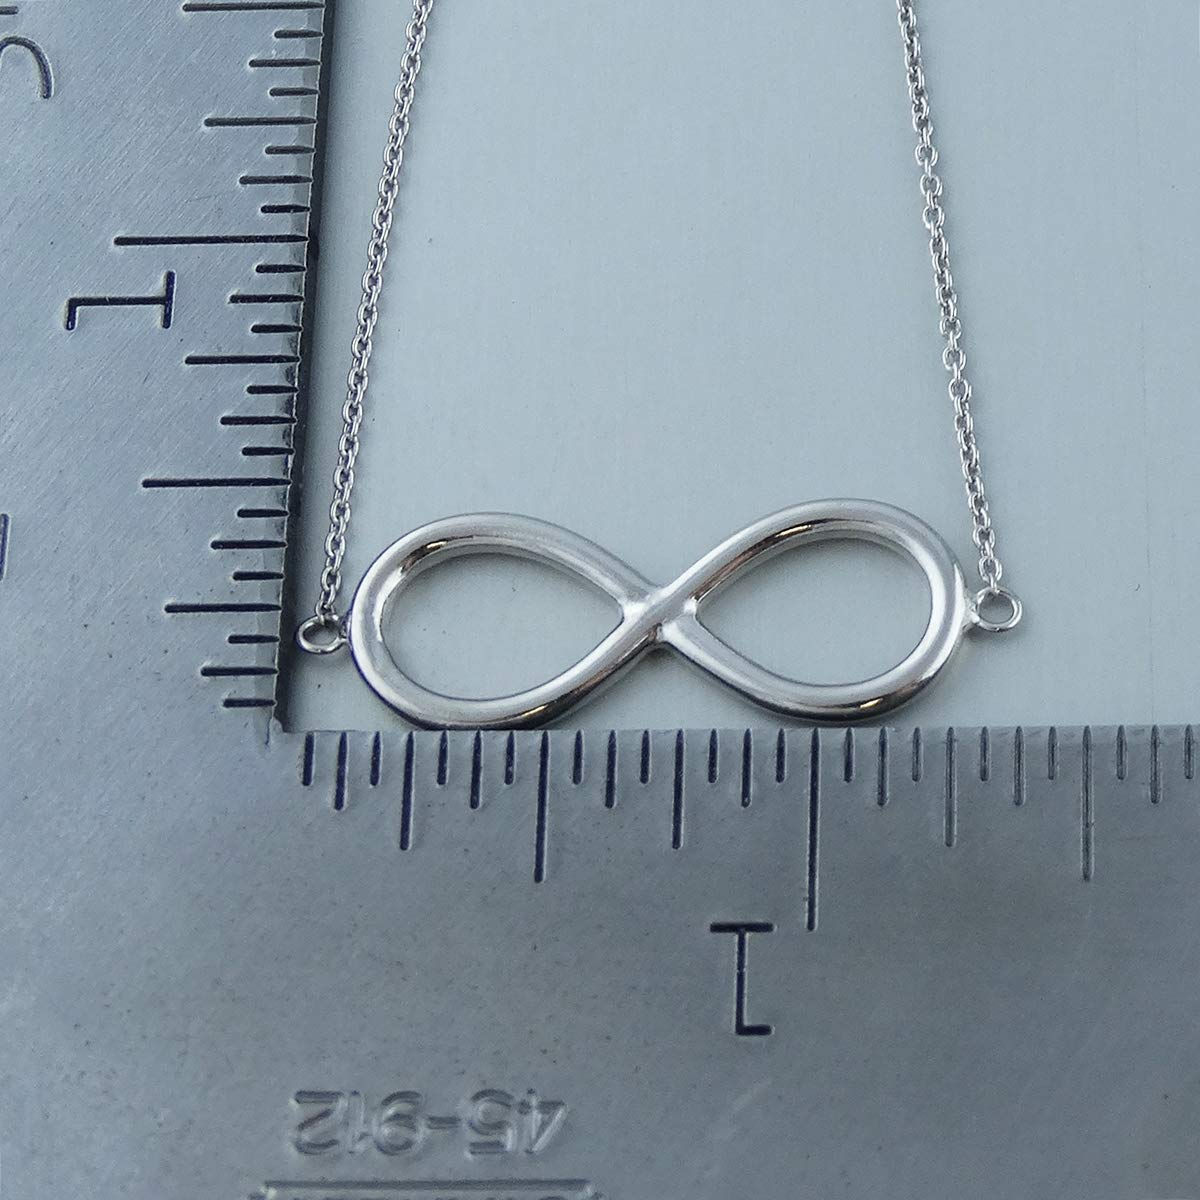 FashionJunkie4Life 8 Sterling Silver Infinity Sign Chain Link Bracelet w//Lobster Clasp